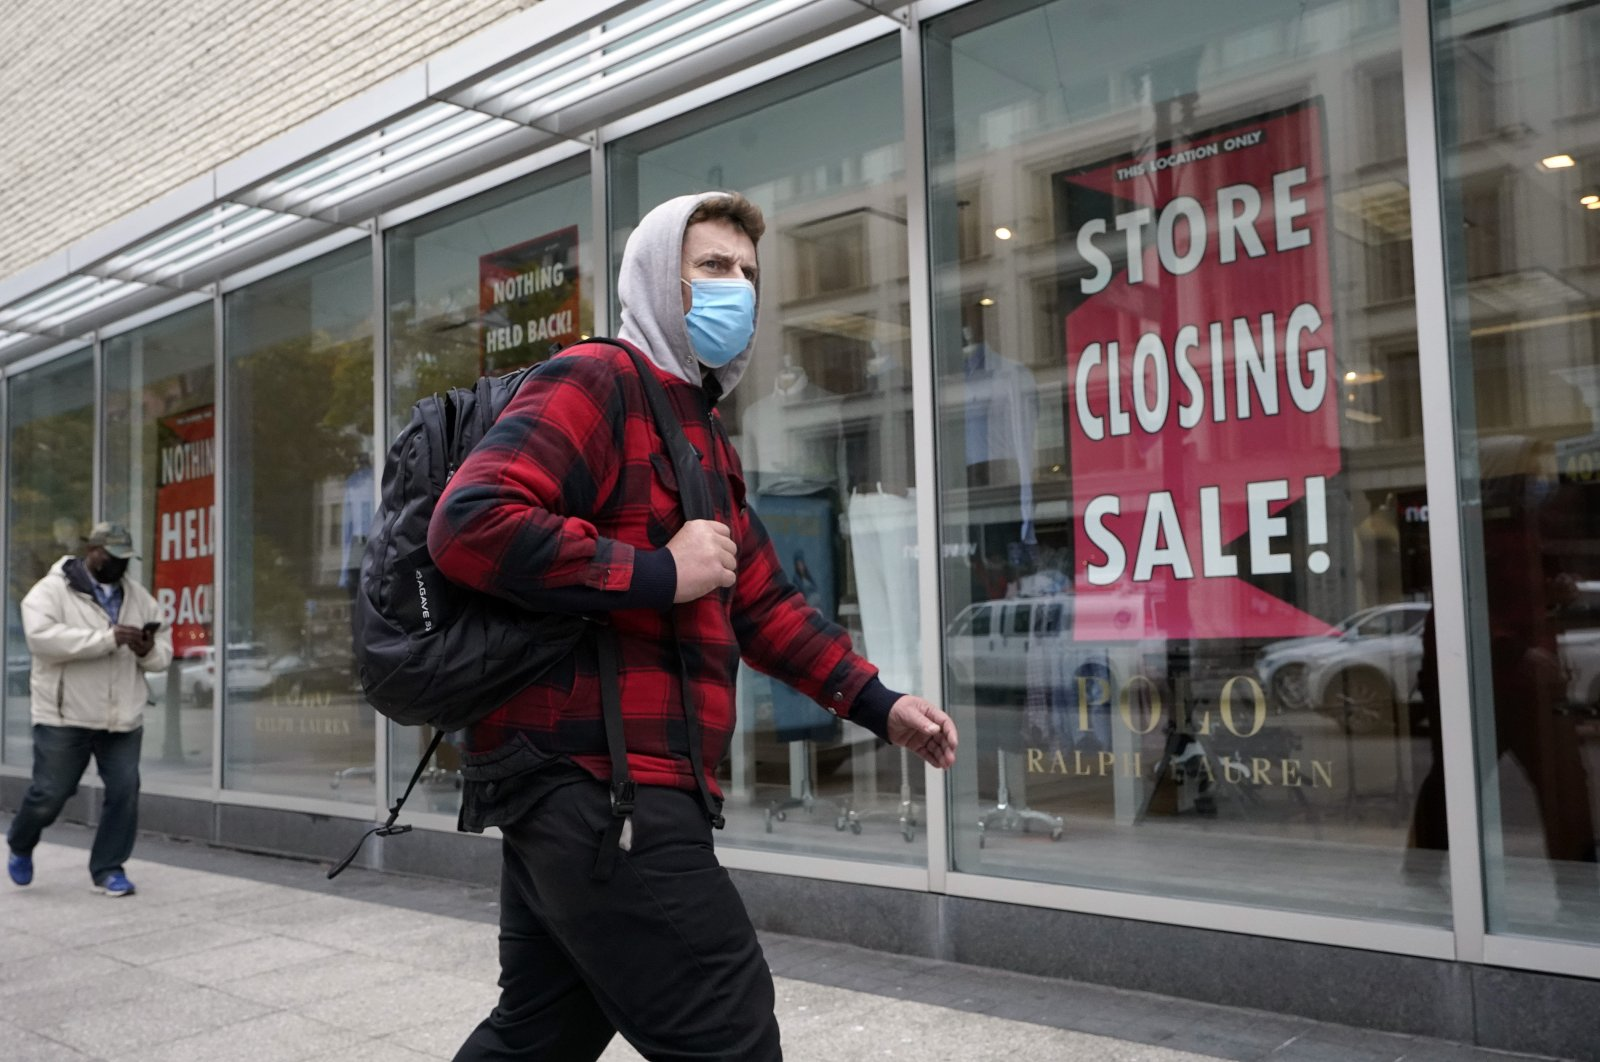 A passerby walks past a store closing sign in the window of a department store, in Boston, U.S., Oct. 27, 2020. (AP Photo)